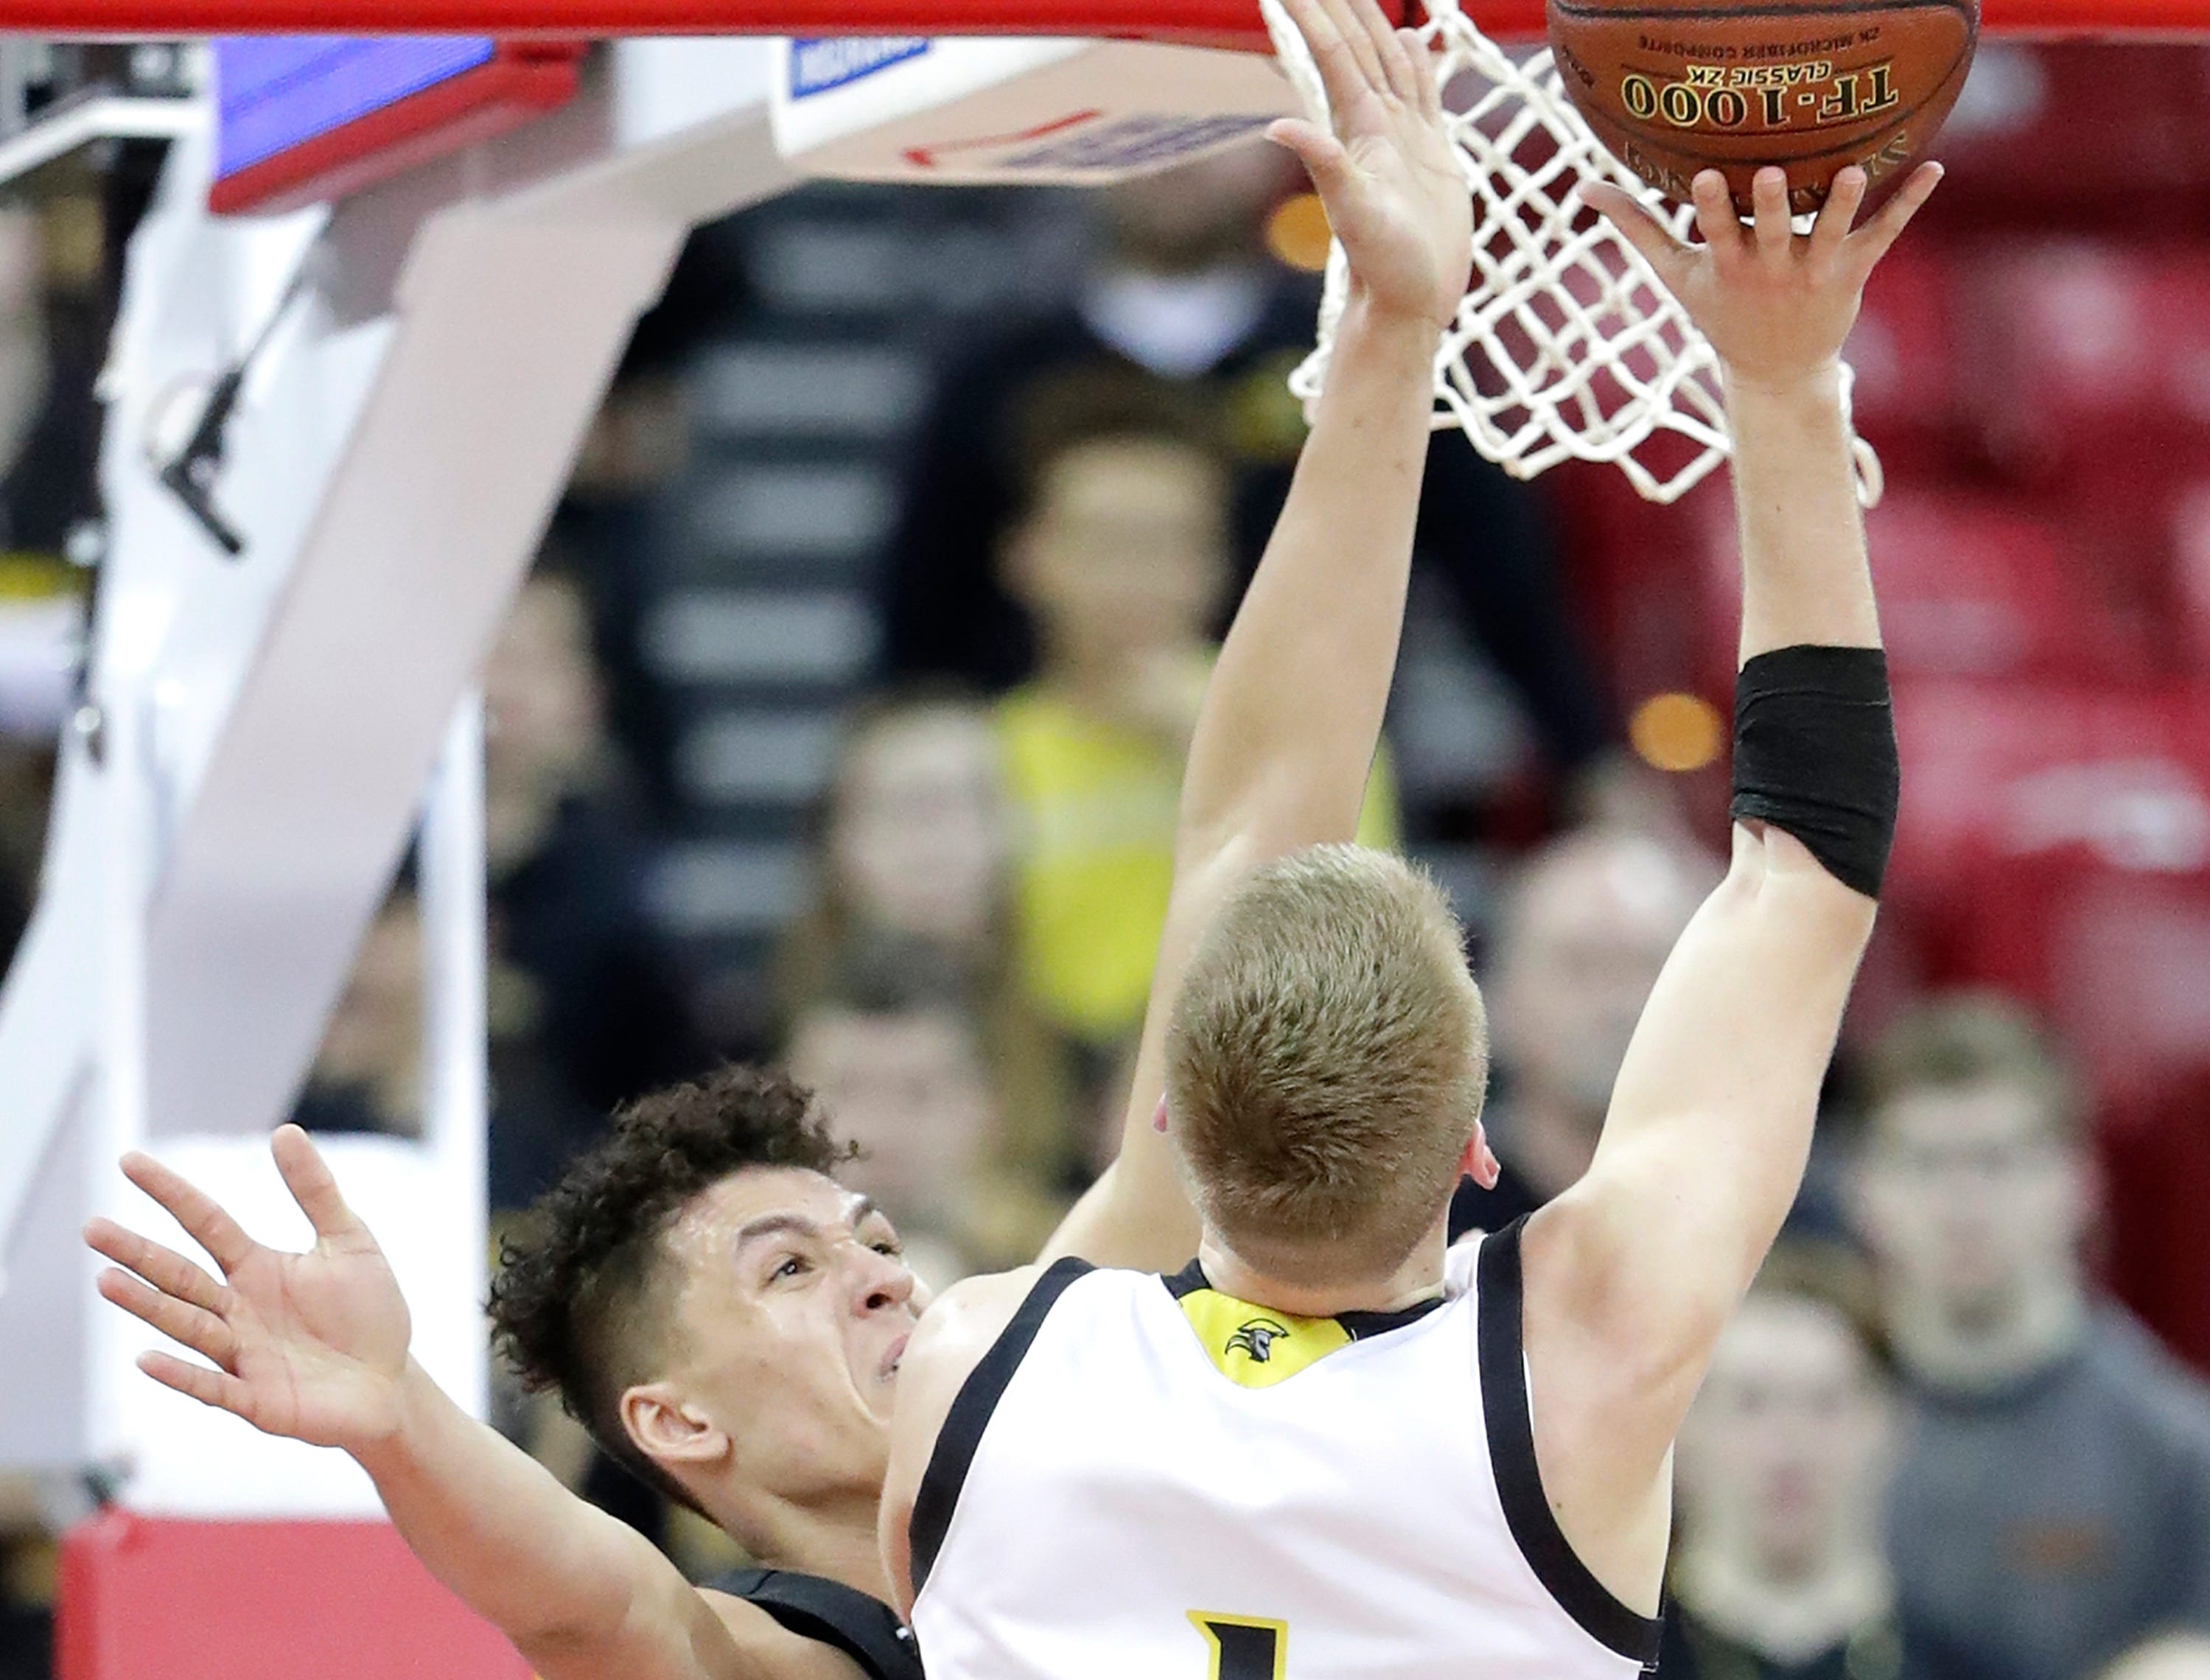 Denmark High School's #33 Patrick Suemnick against Waupun High School's #1 Marcus Domask during their WIAA Division 3 boys basketball state semifinal on Thursday, March 14, 2019, at the KohlCenter in Madison, Wis. Waupun defeated Denmark 60 to 43.